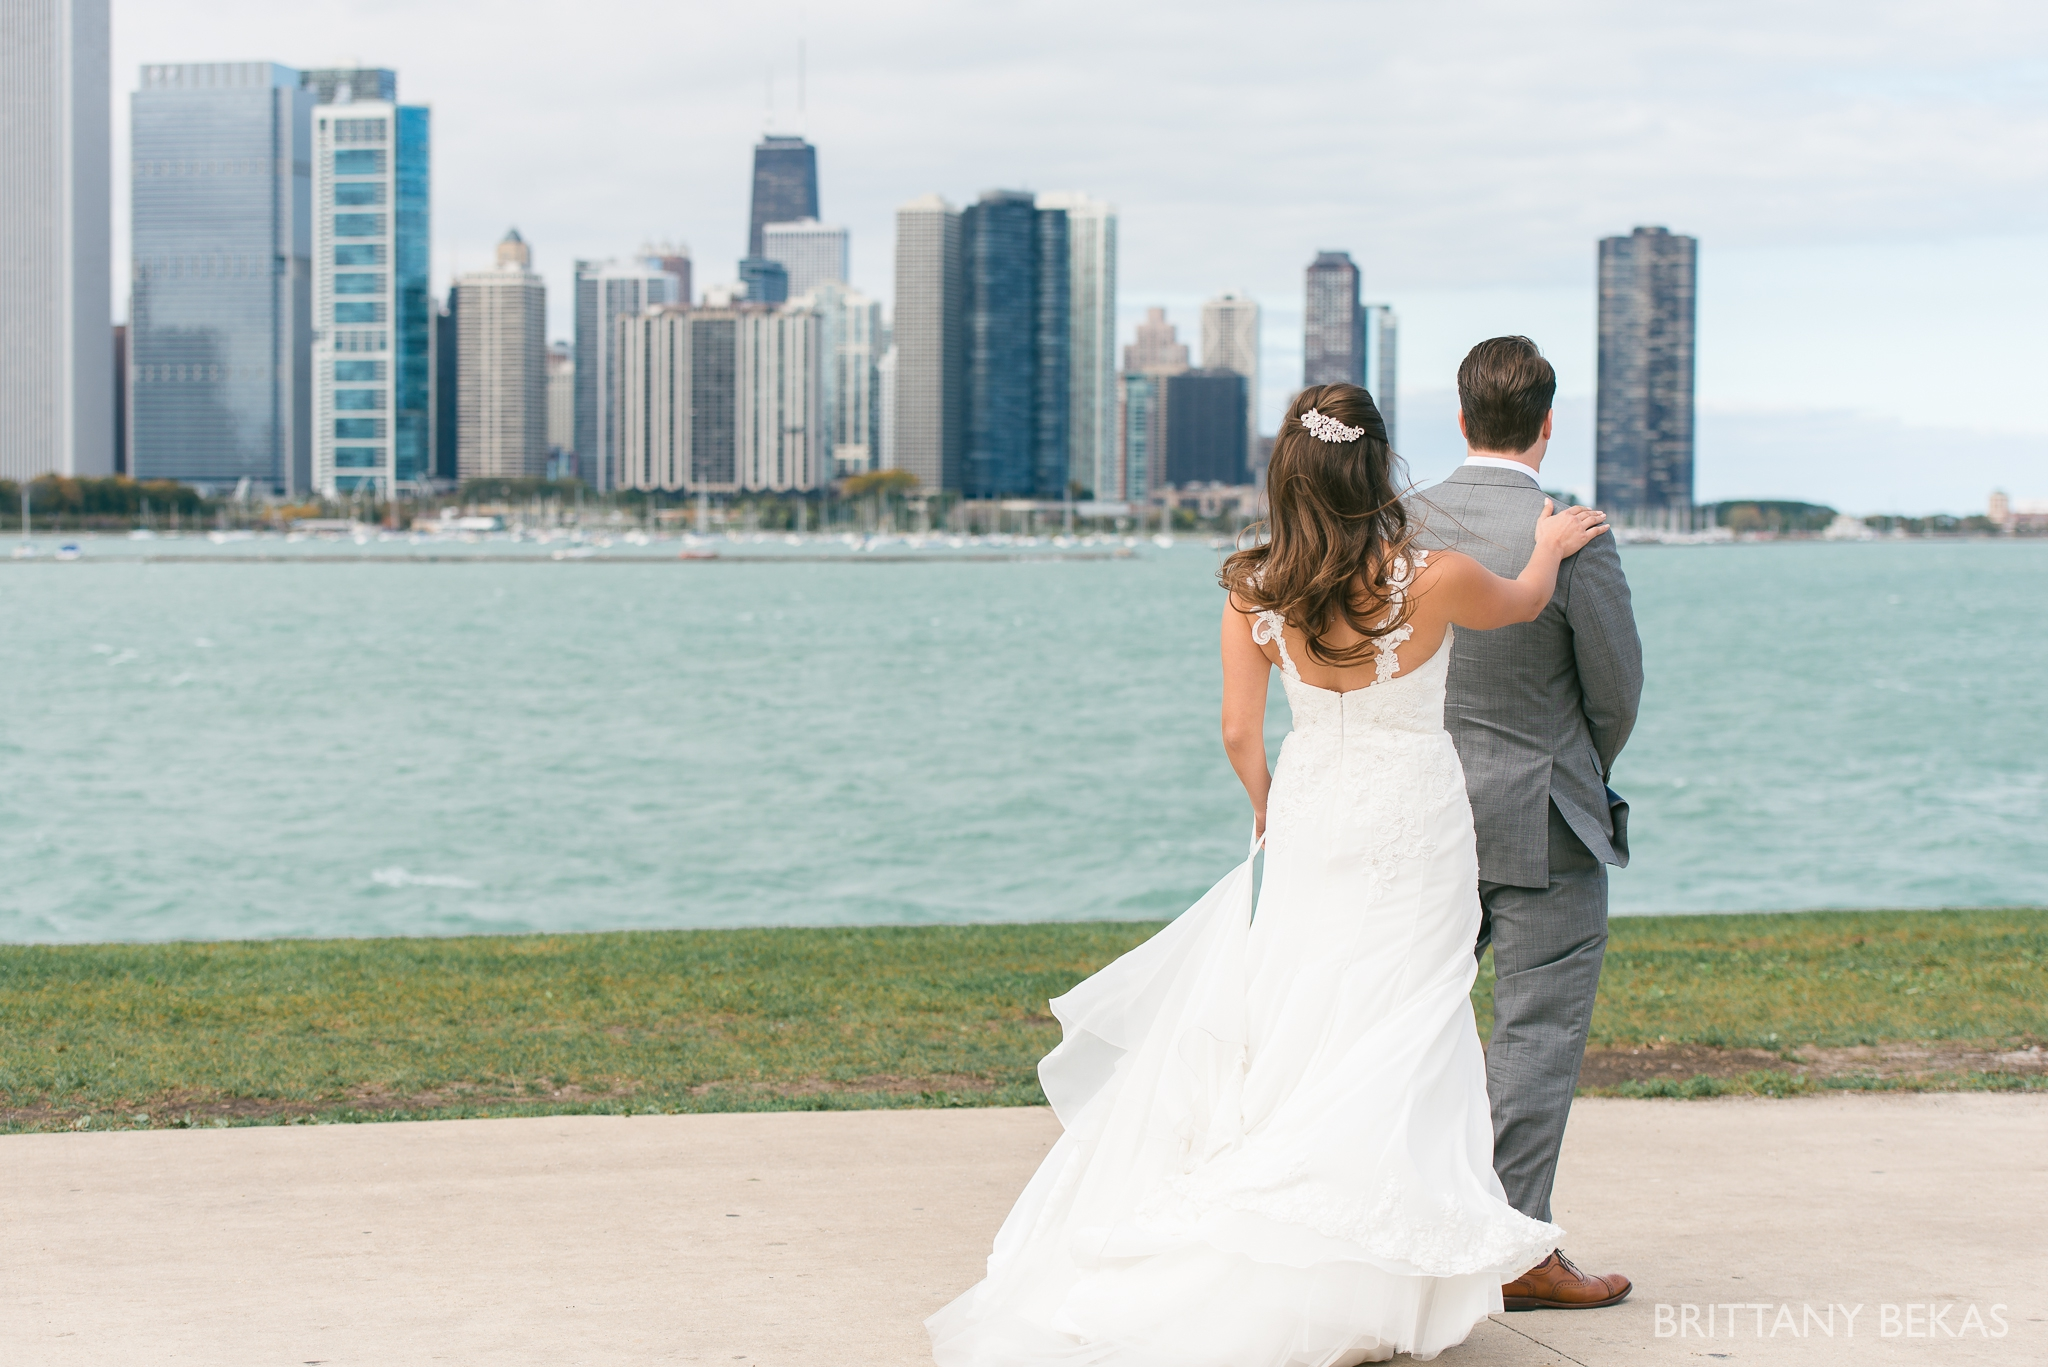 Chicago Wedding Garfield Park Conservatory Wedding Photos - Brittany Bekas Photography_0010